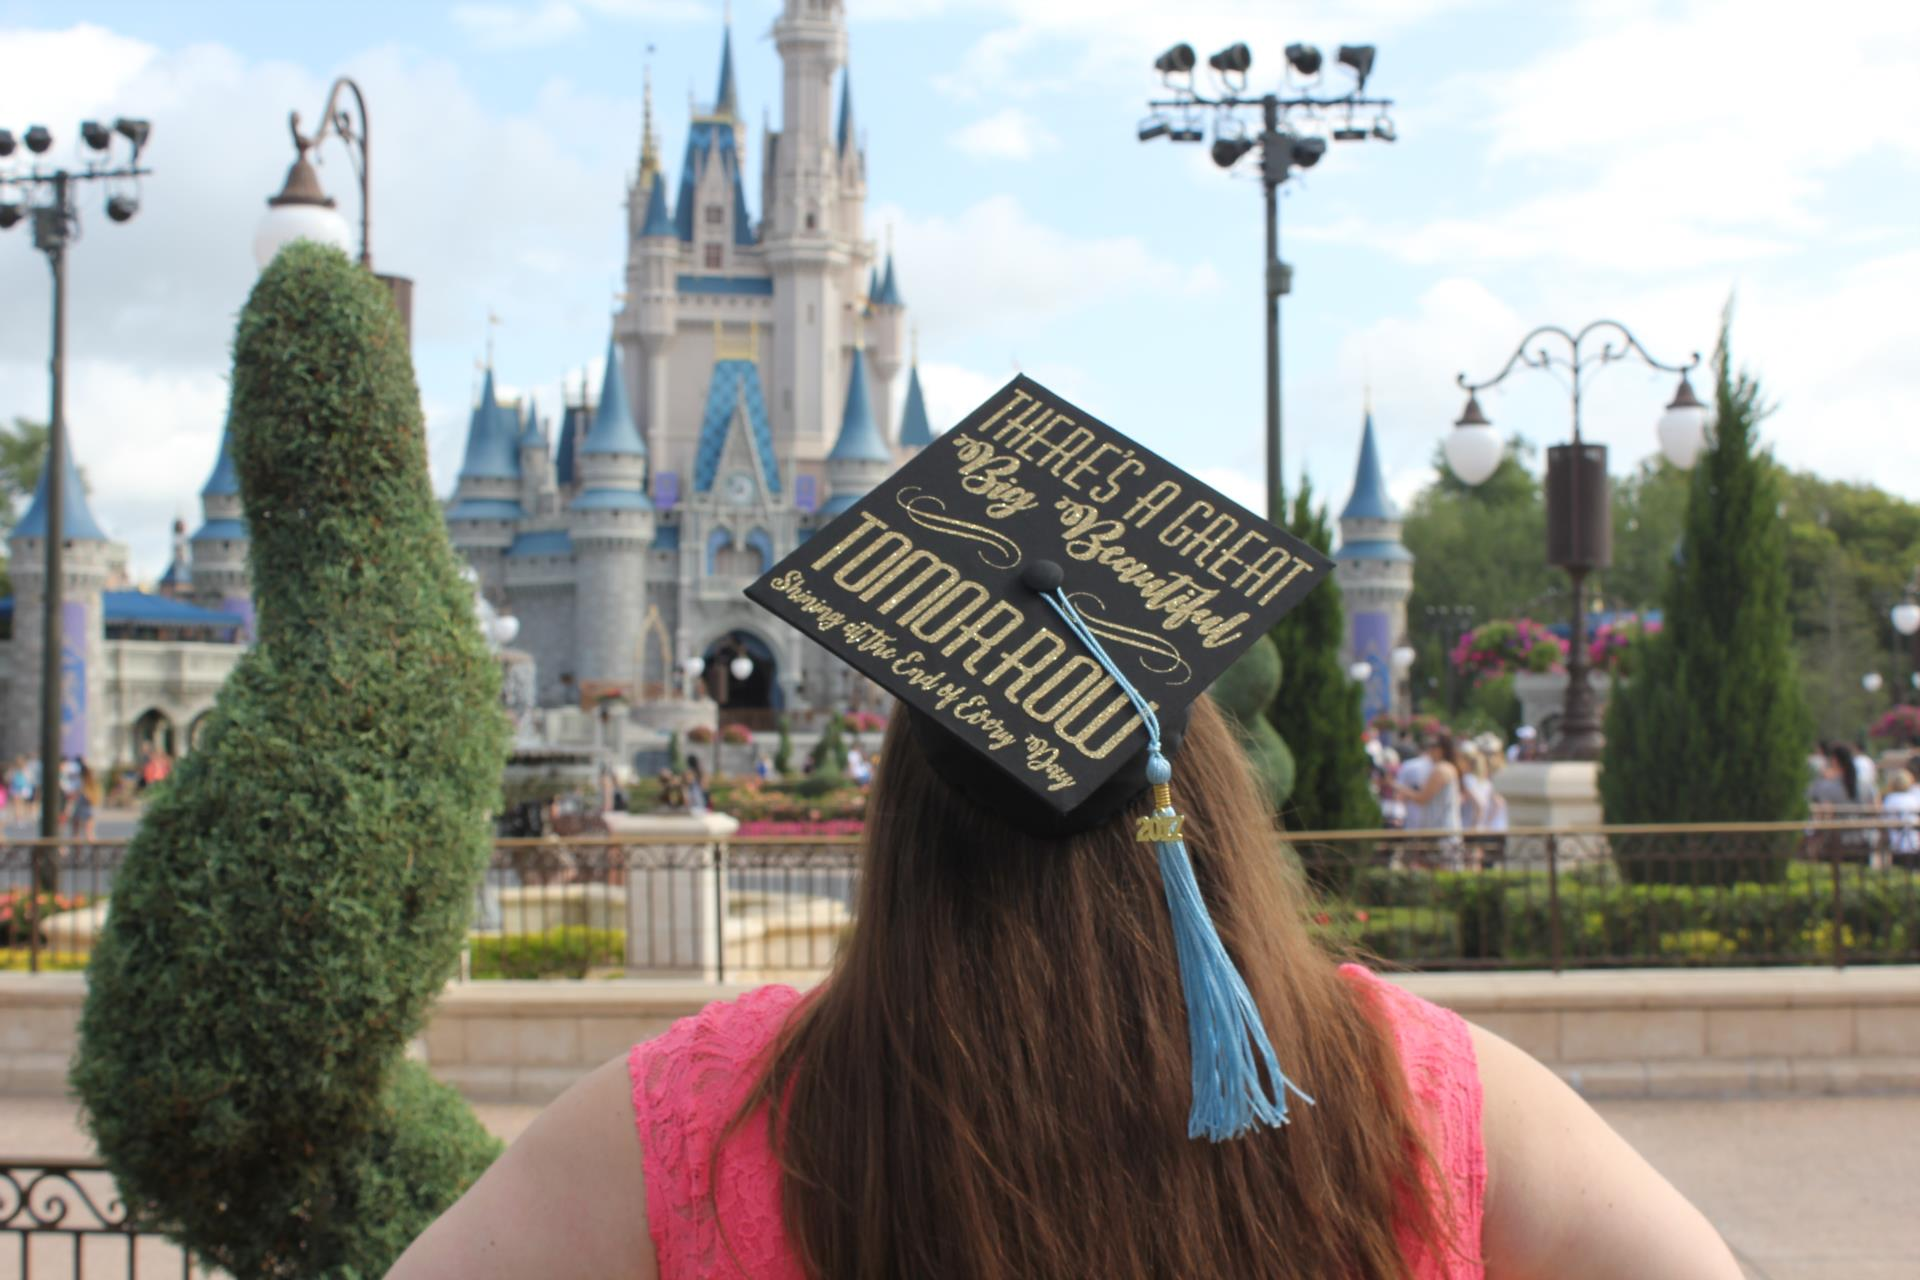 Mrs. Bilsky in Graduation Cap Looking at Disney World Castle